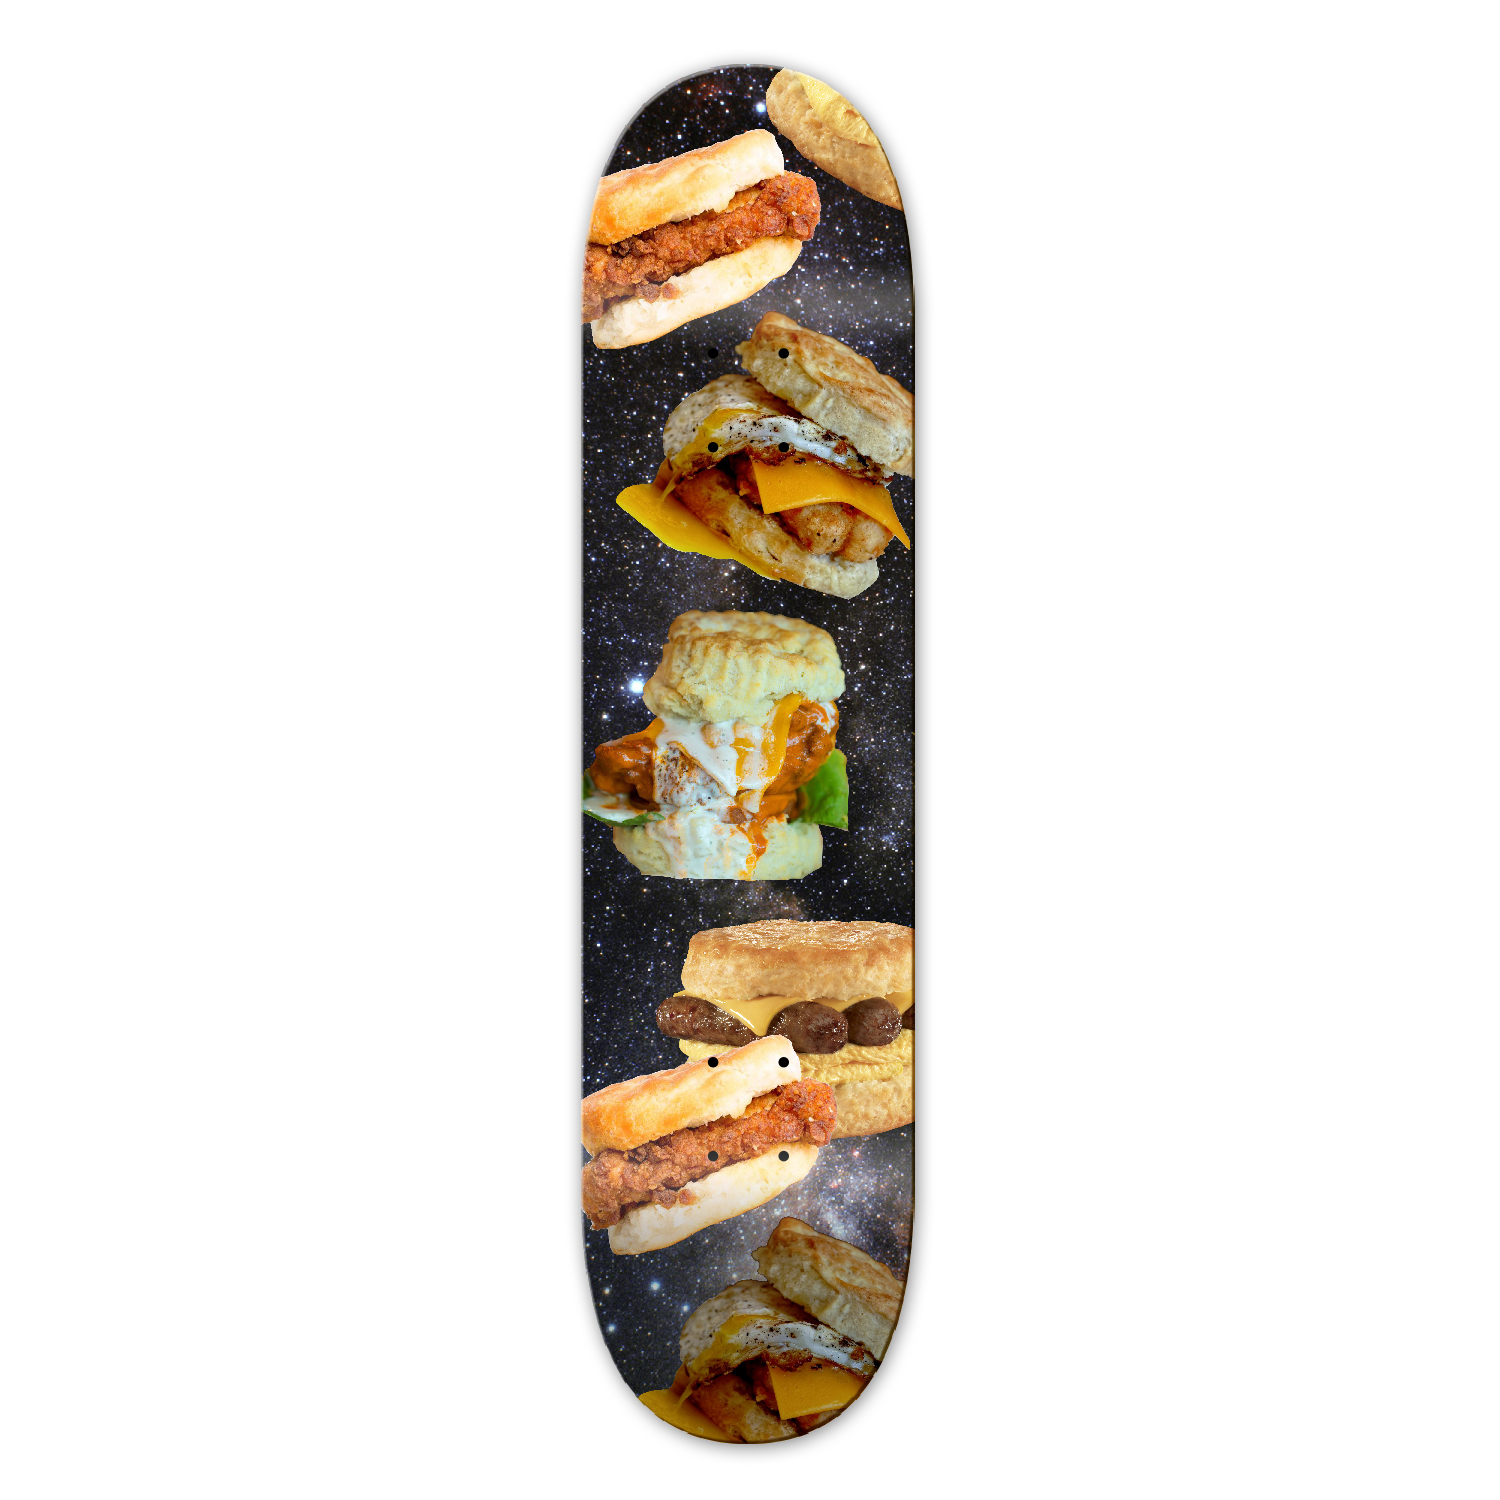 Biscuit Skateboard Deck